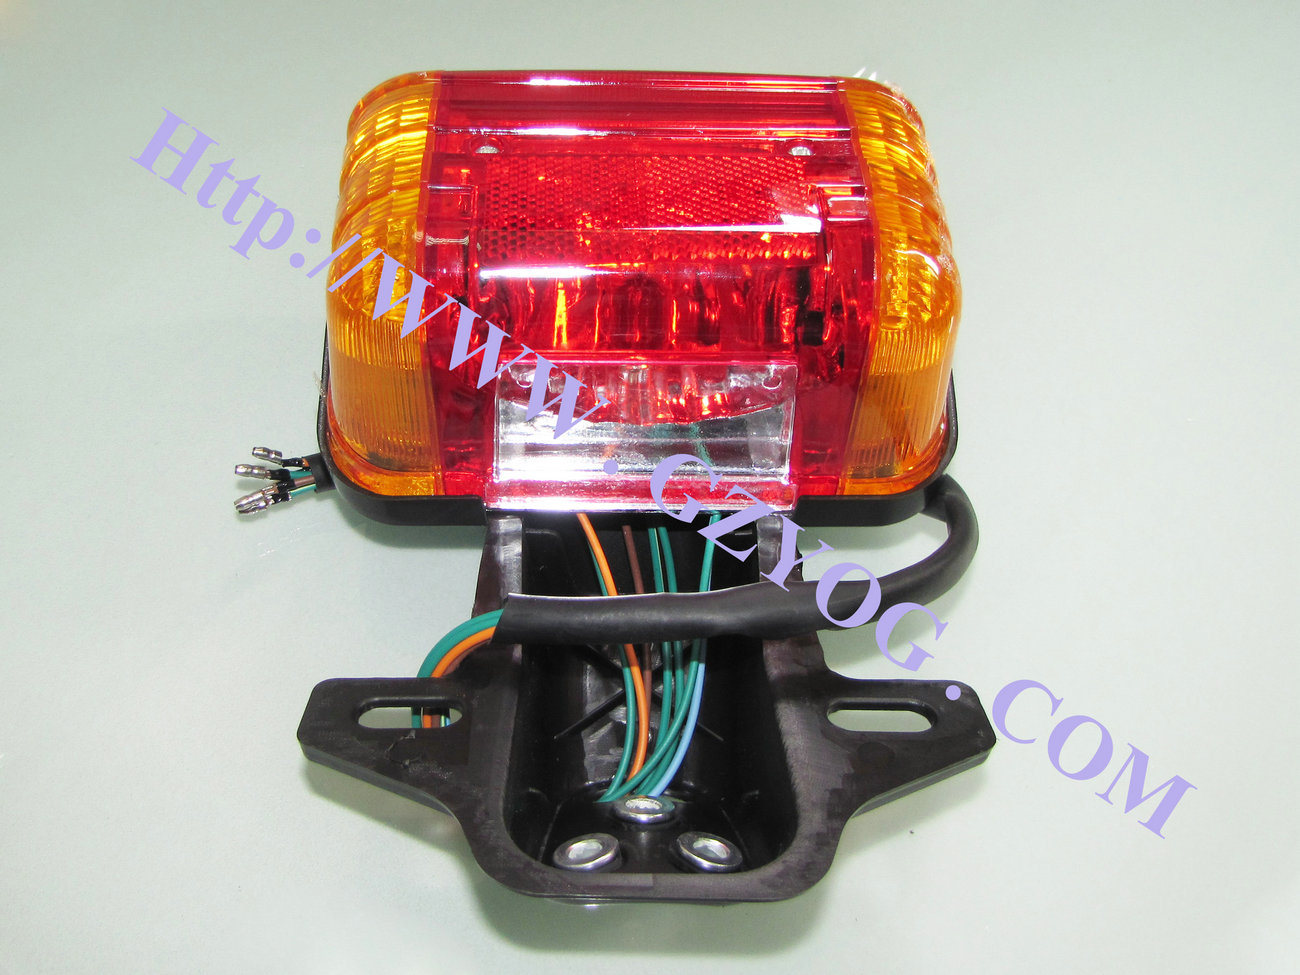 Yog Motorcycle Body Spare Parts Rim Handle Switch Speedometer Assy Gear Lever Side Cover Rear Light Spoke Set Hub Cg